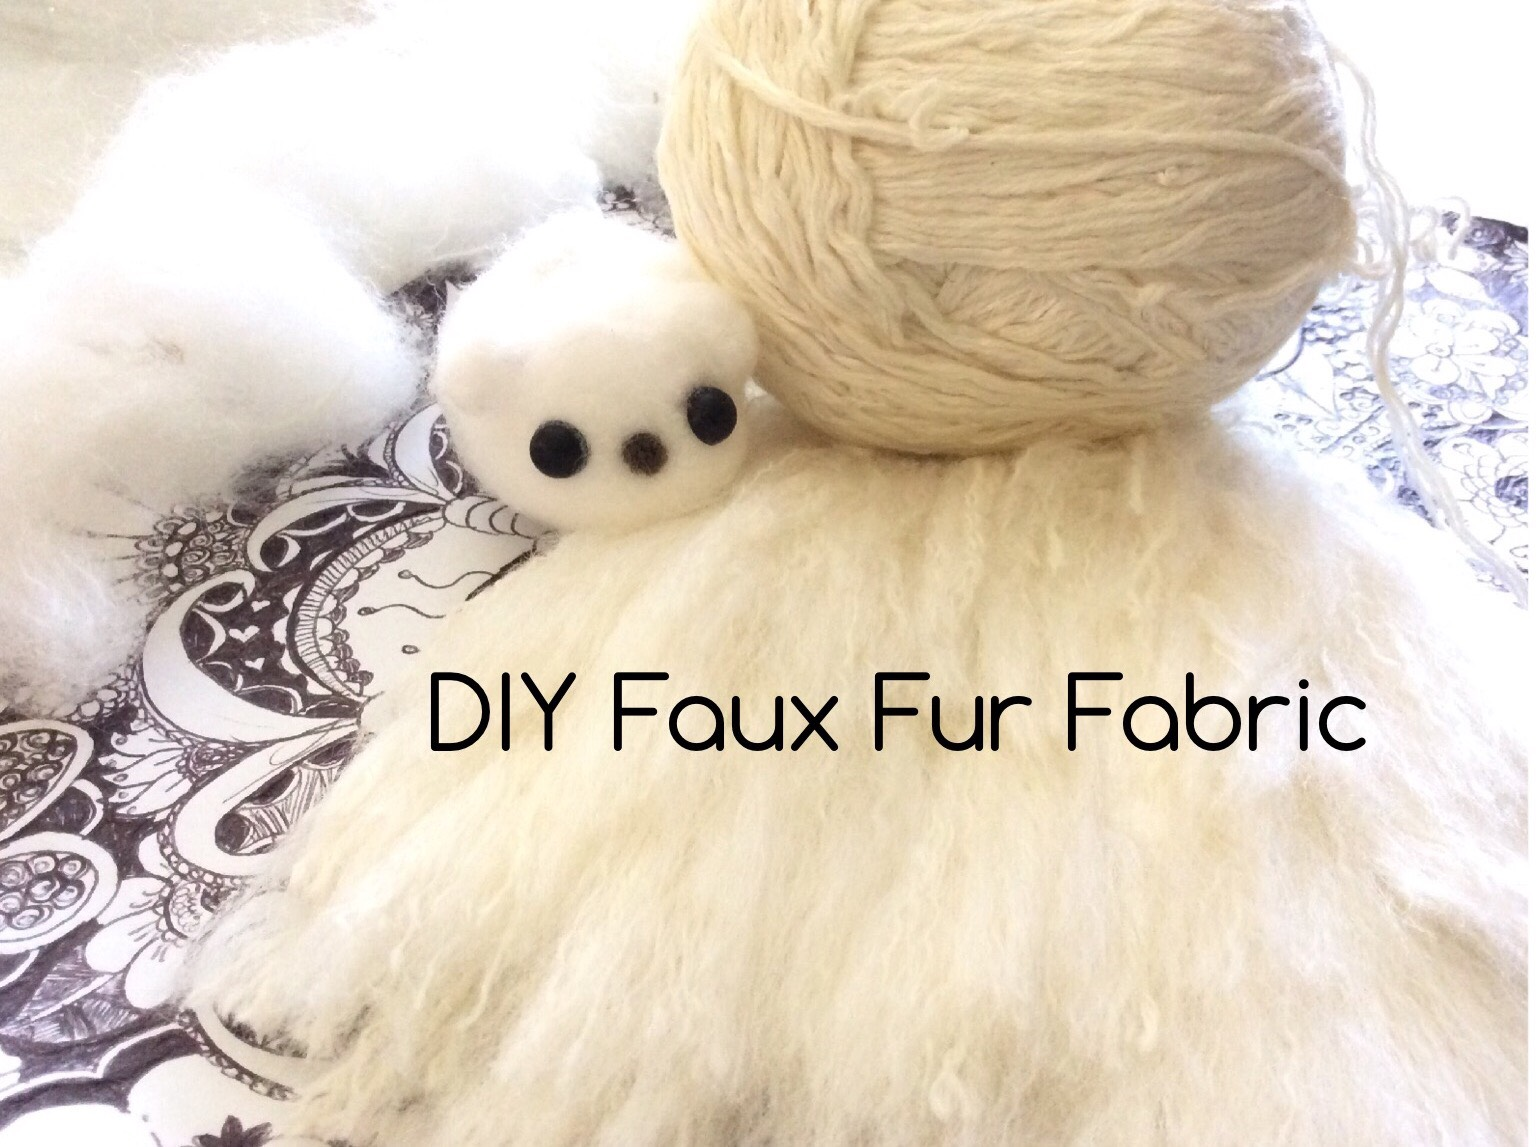 Picture of Faux Fur Using Yarn